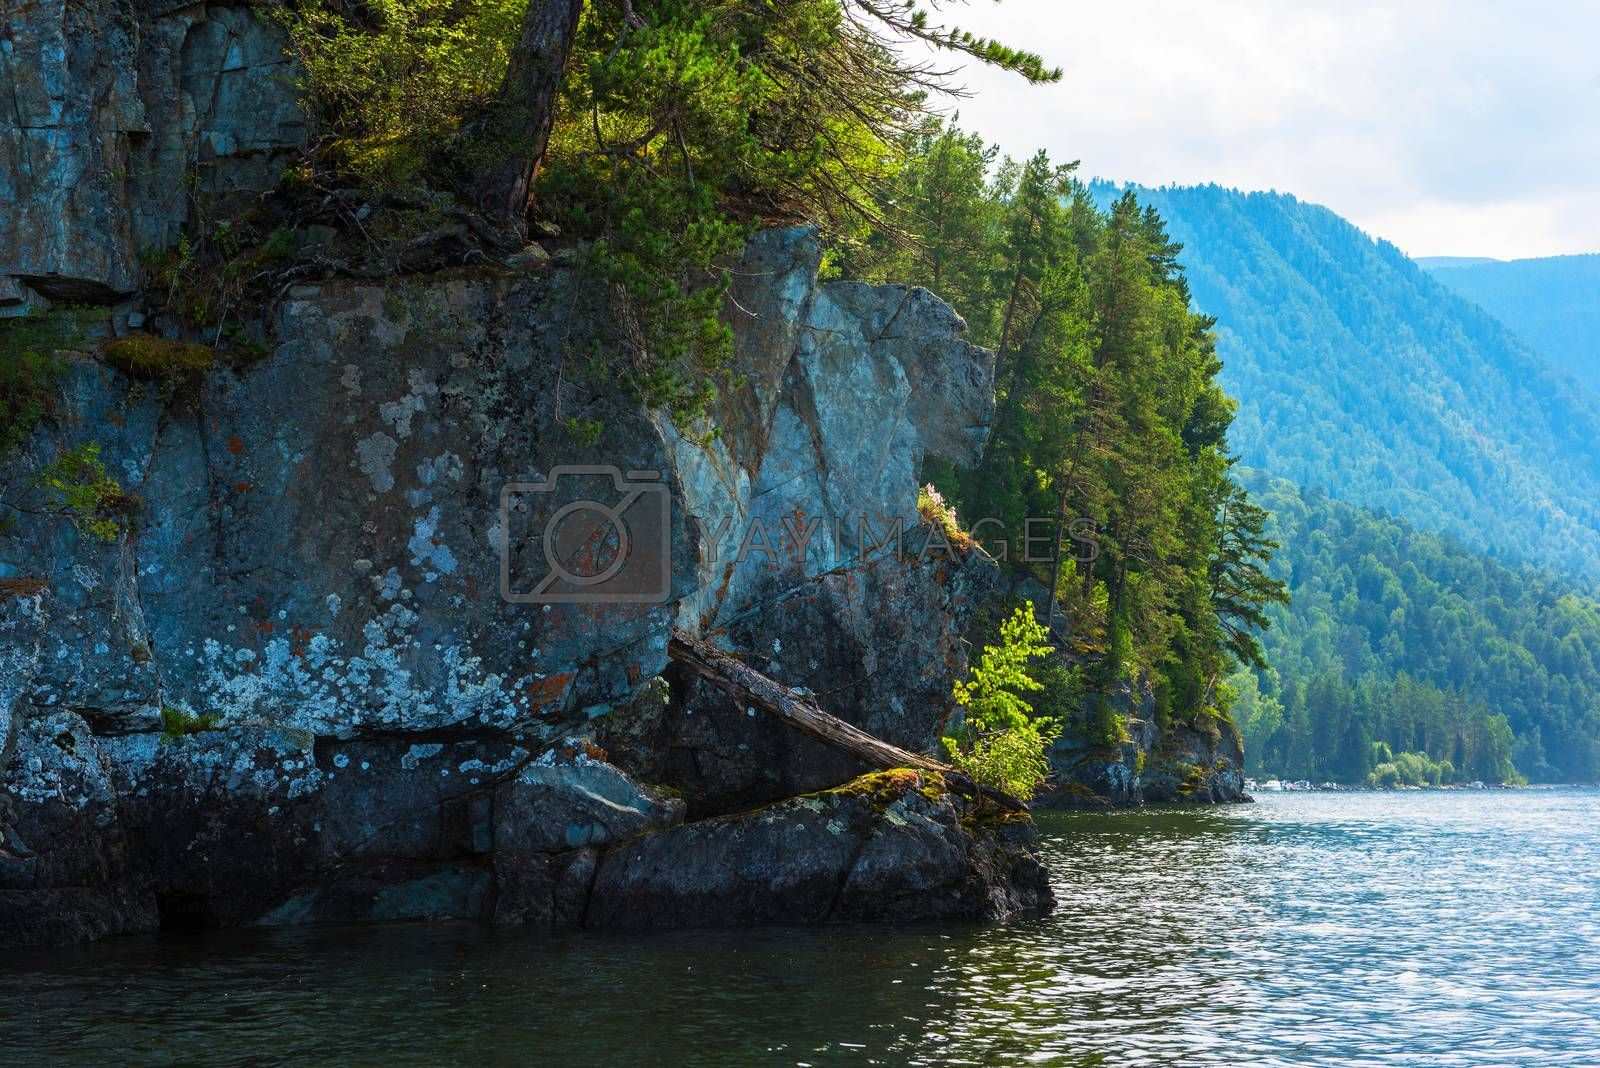 Teletskoye lake in Altai mountains, Siberia, Russia. Beauty summer morning. The lake is a UNESCO World Cultural and Natural Heritage Site.